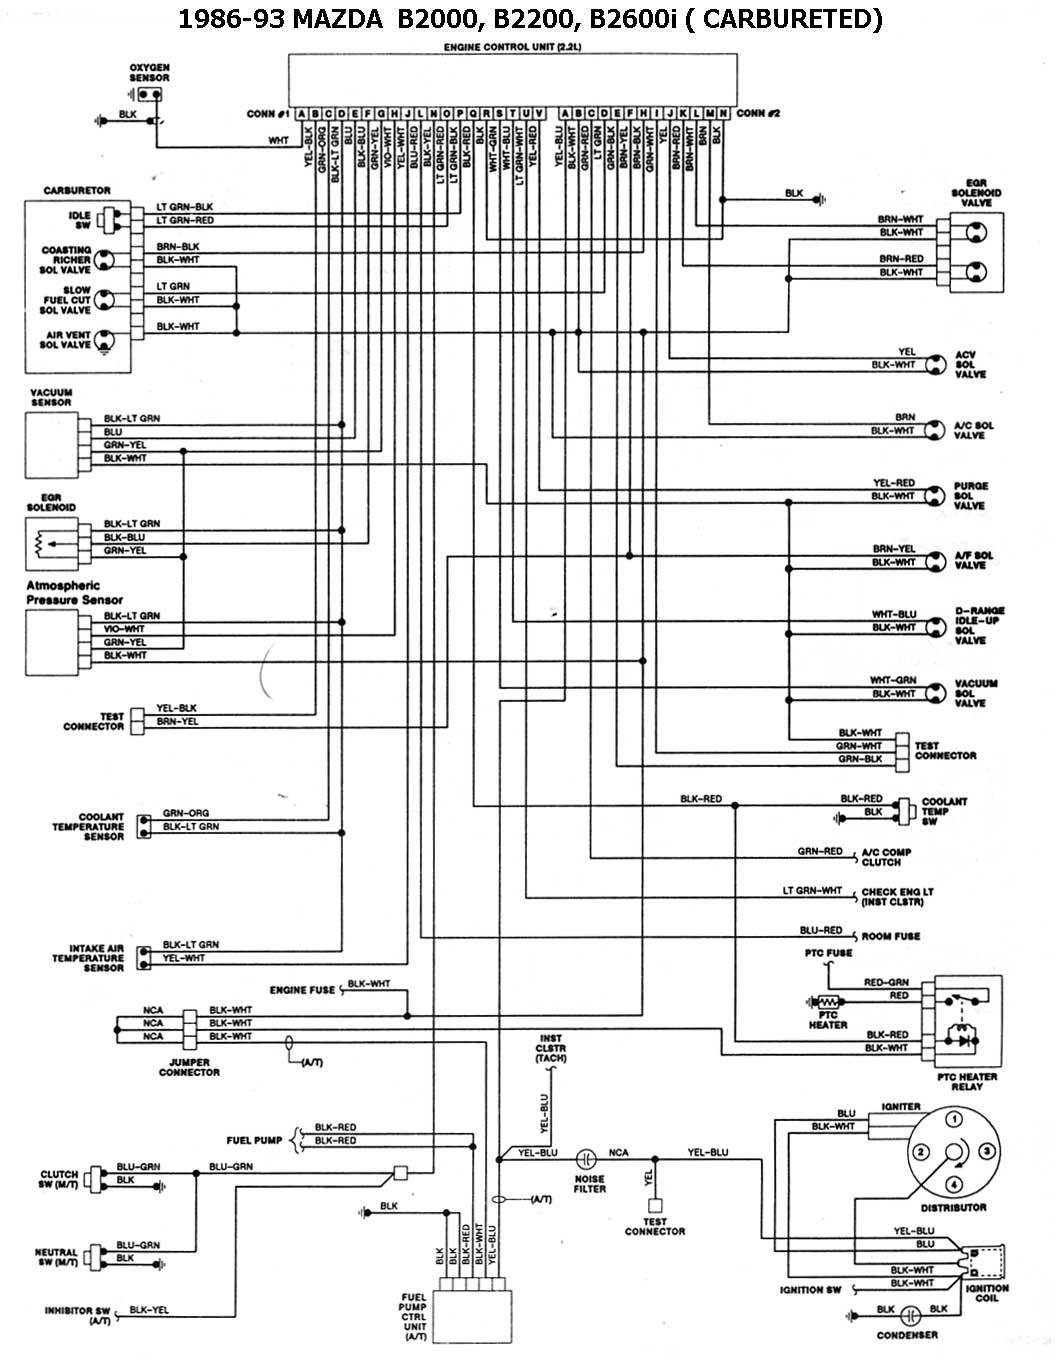 Engine Manifold Vacuum Diagram also P 0900c1528008d3a7 besides Chevy Brake Light Switch Diagram besides T875188 Timing marks moreover Wiring Diagram For 1999 Mazda B3000. on 1997 mazda b2200